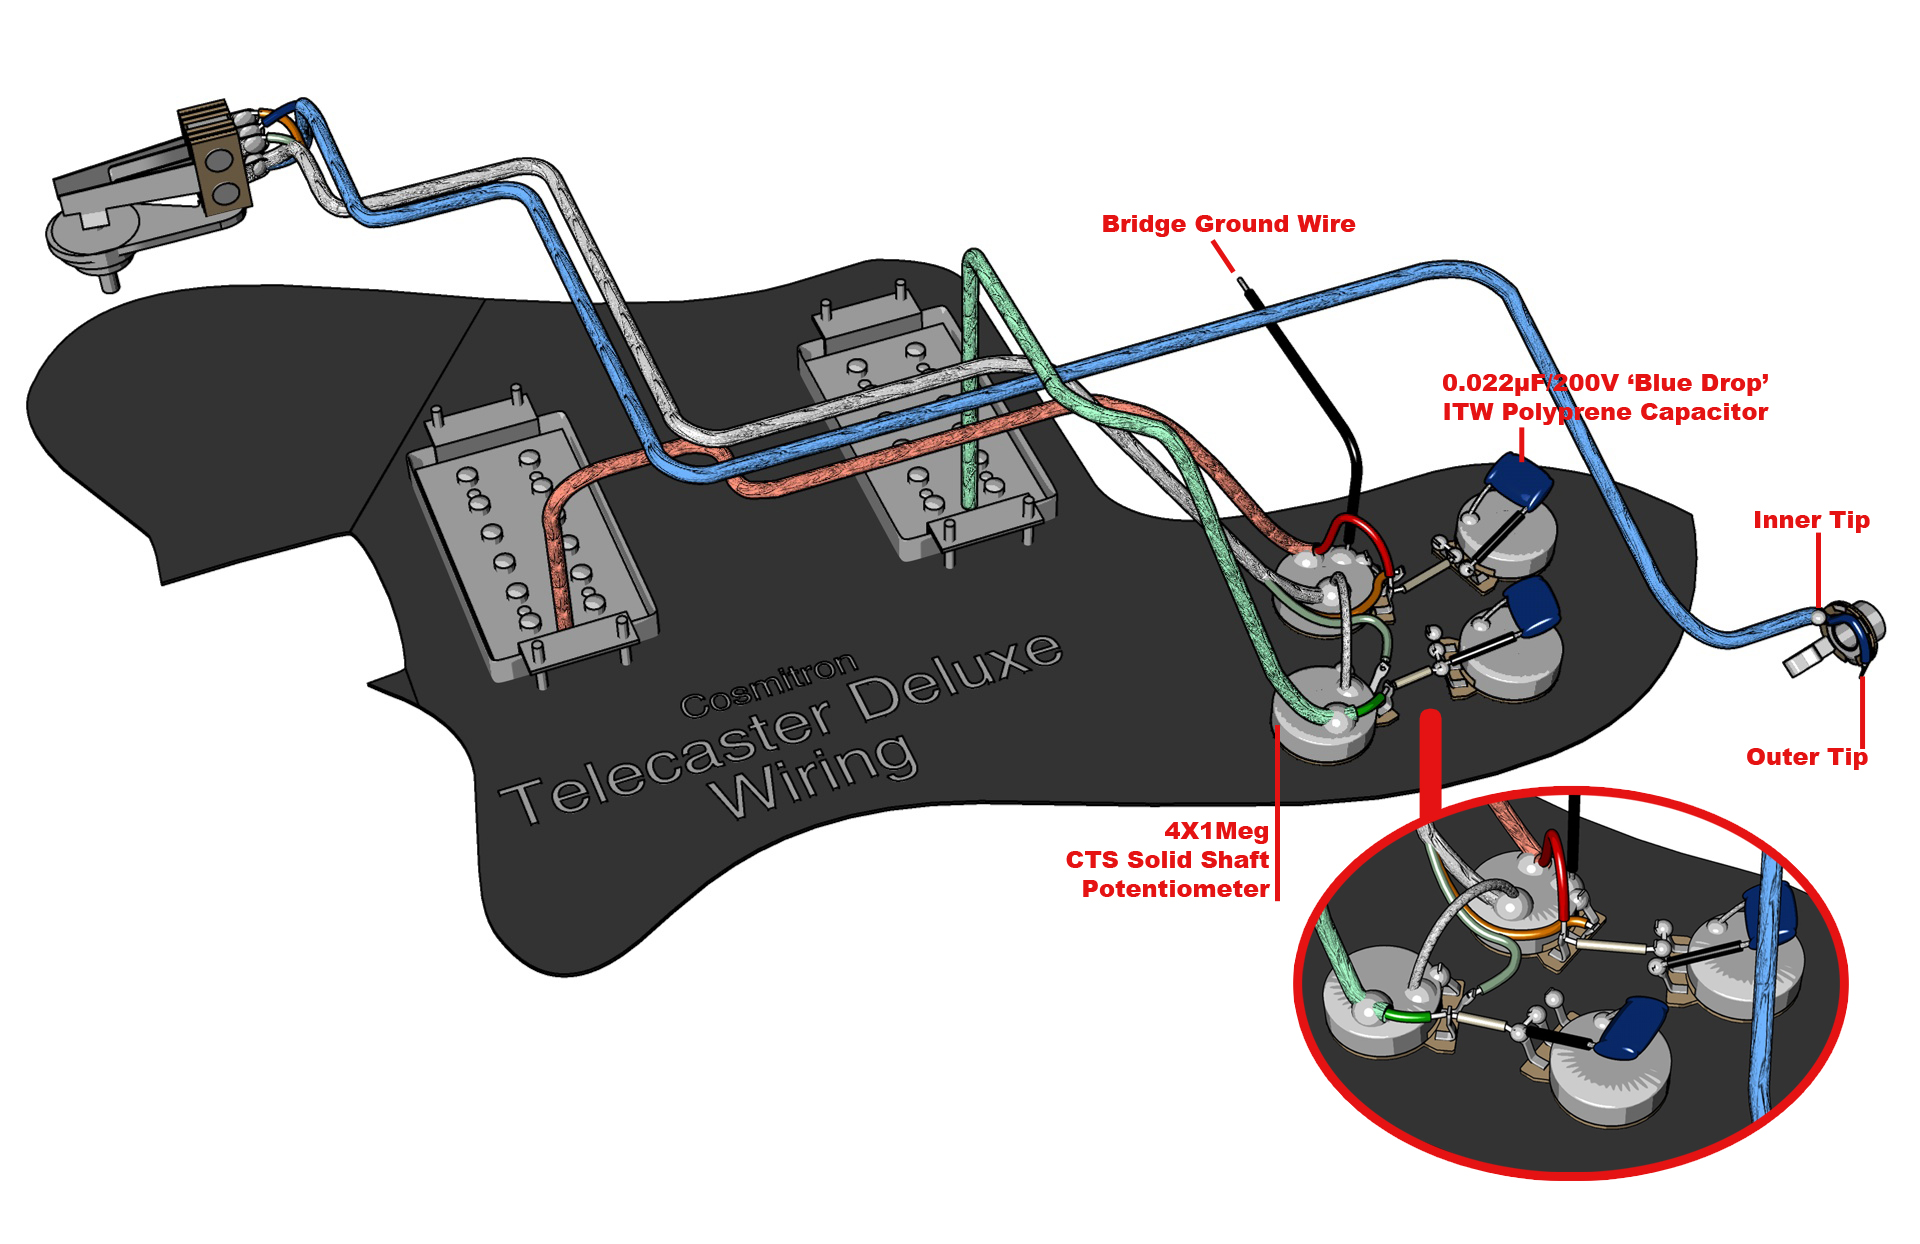 Wiring Diagram Telecaster Deluxe : Ilovefuzz view topic ri tele deluxe re wire